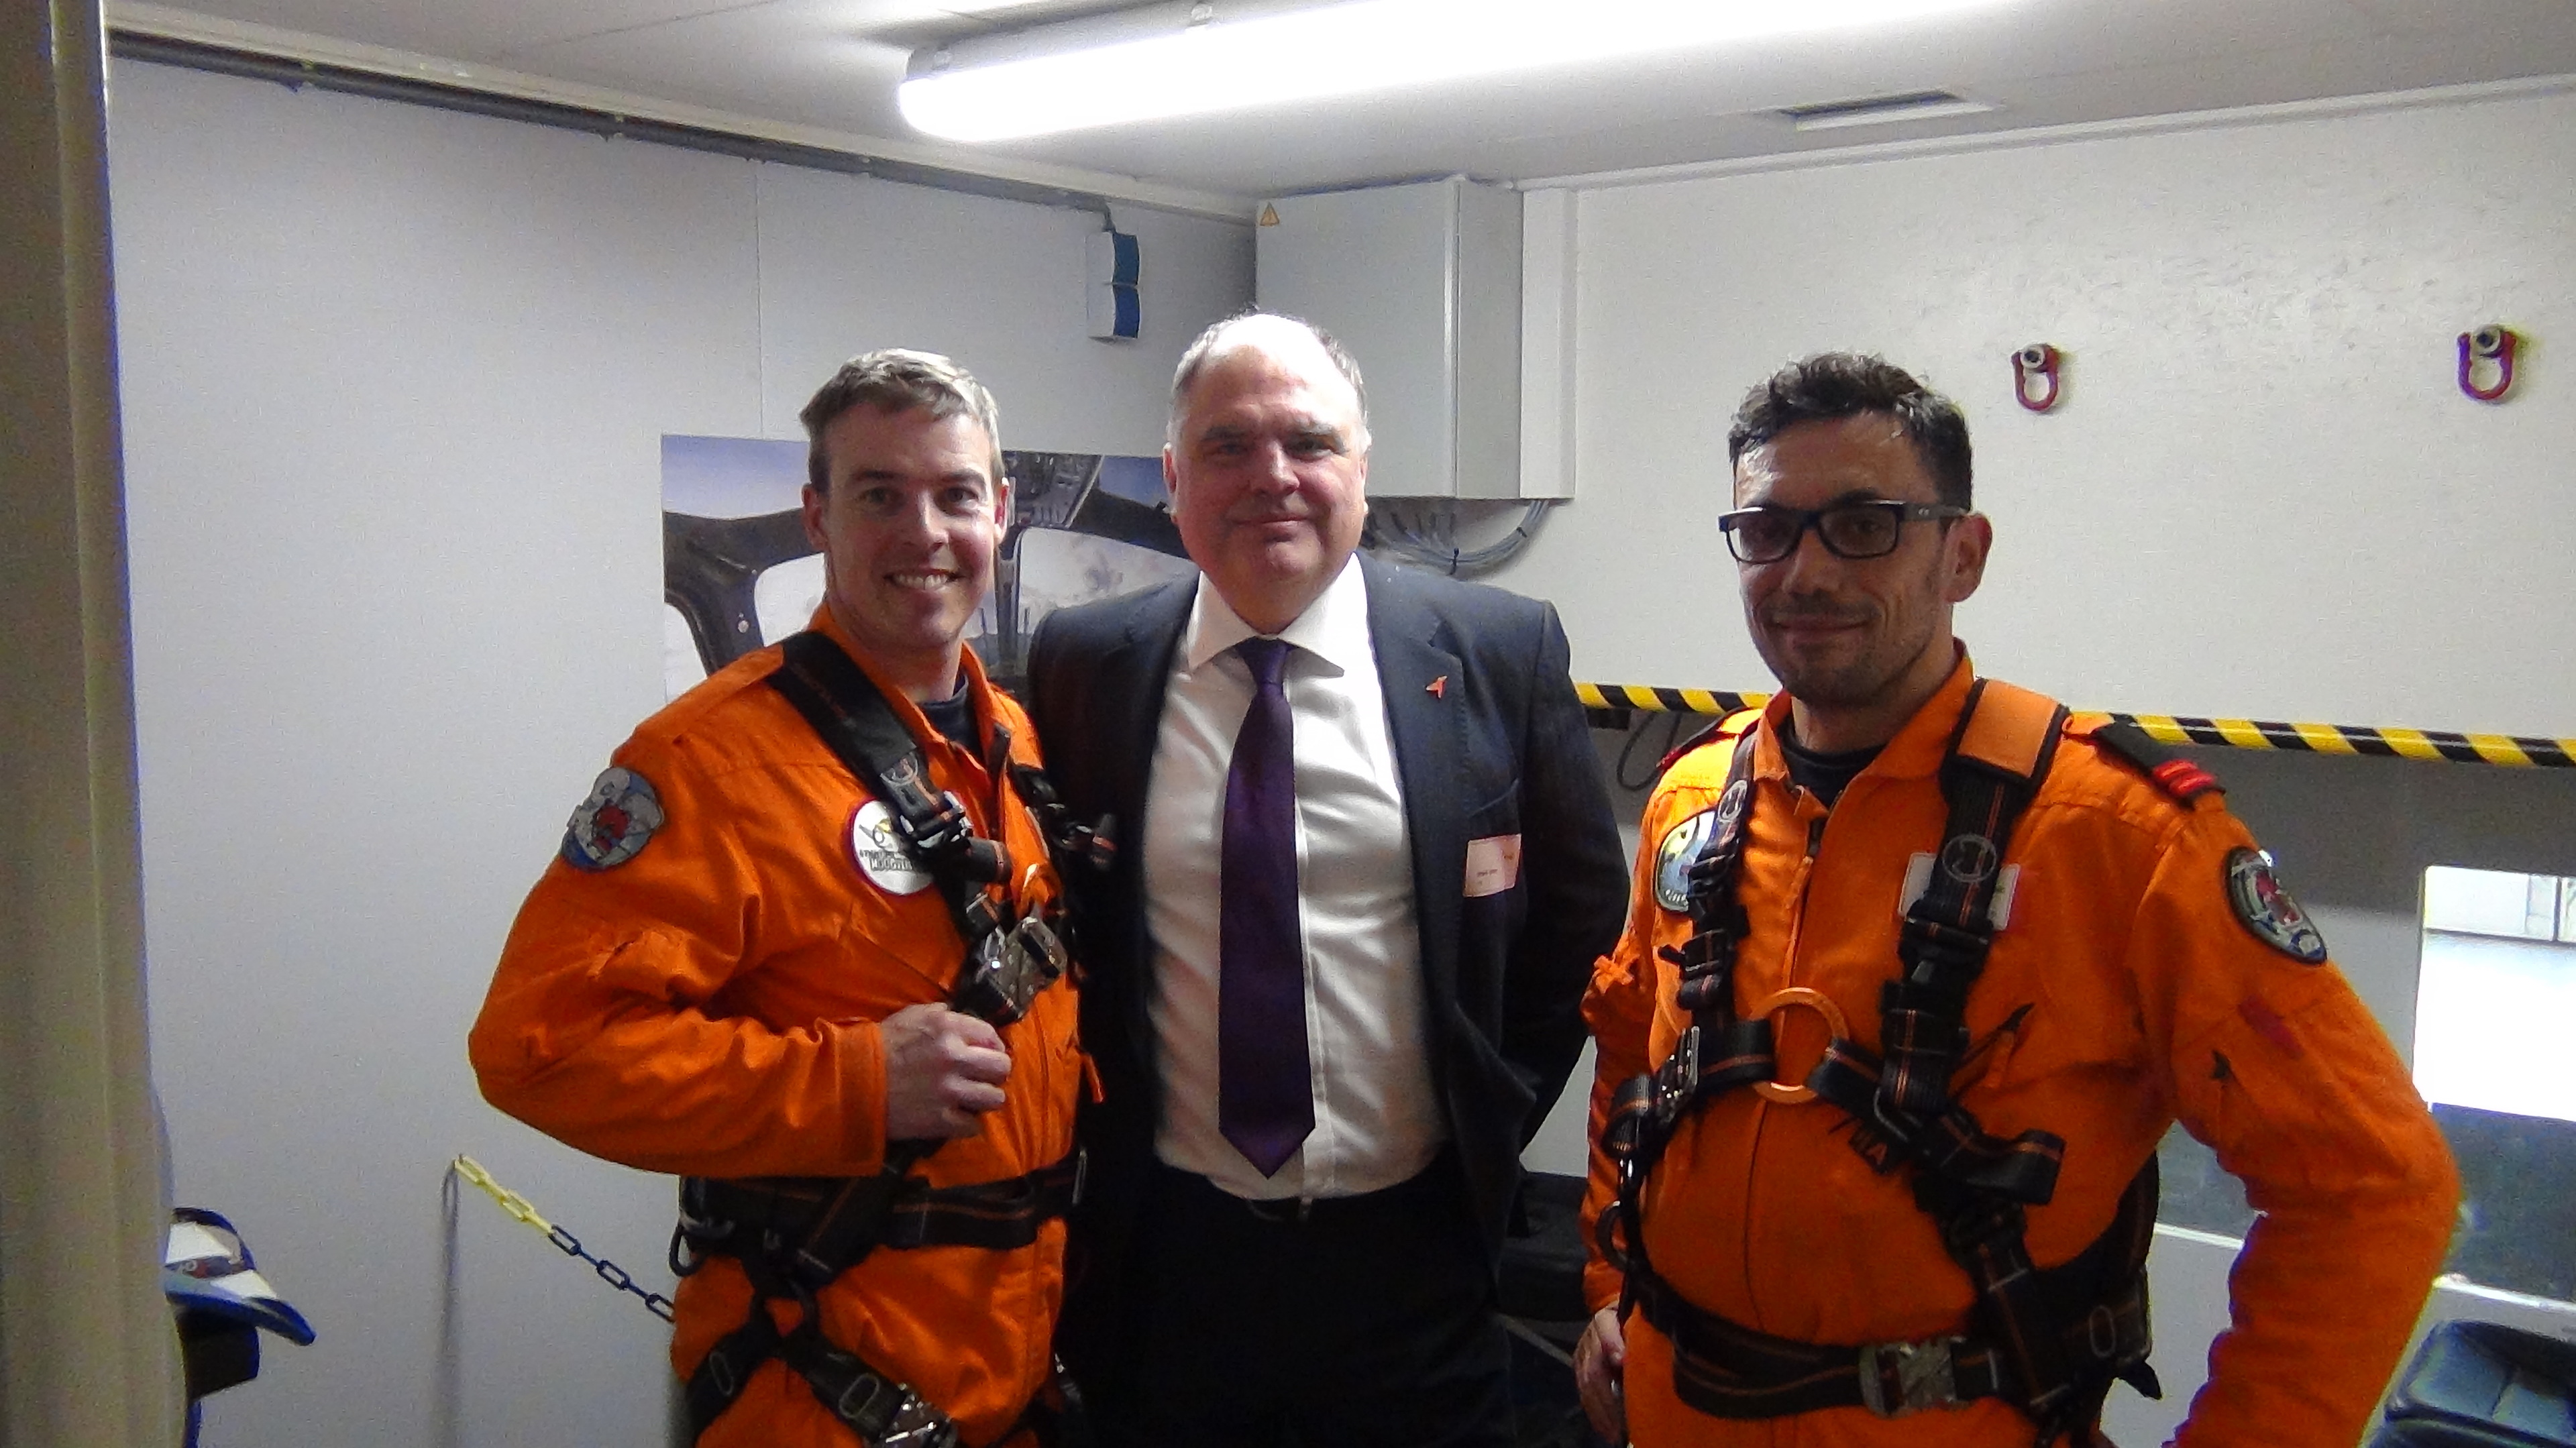 Mark Abbey, centre, at the hoist training facility in Den Helder.